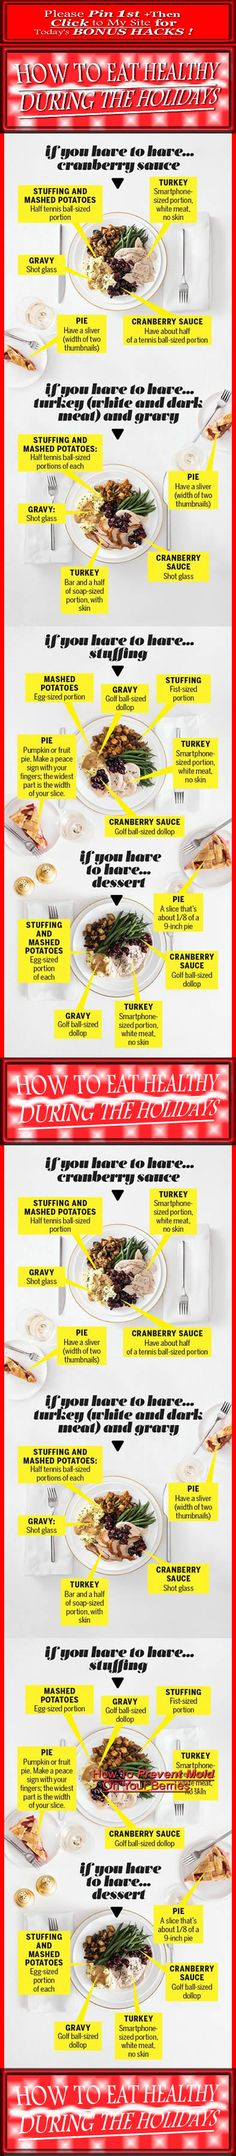 HOW TO EAT HEALTHY DURING THE HOLIDAYS!